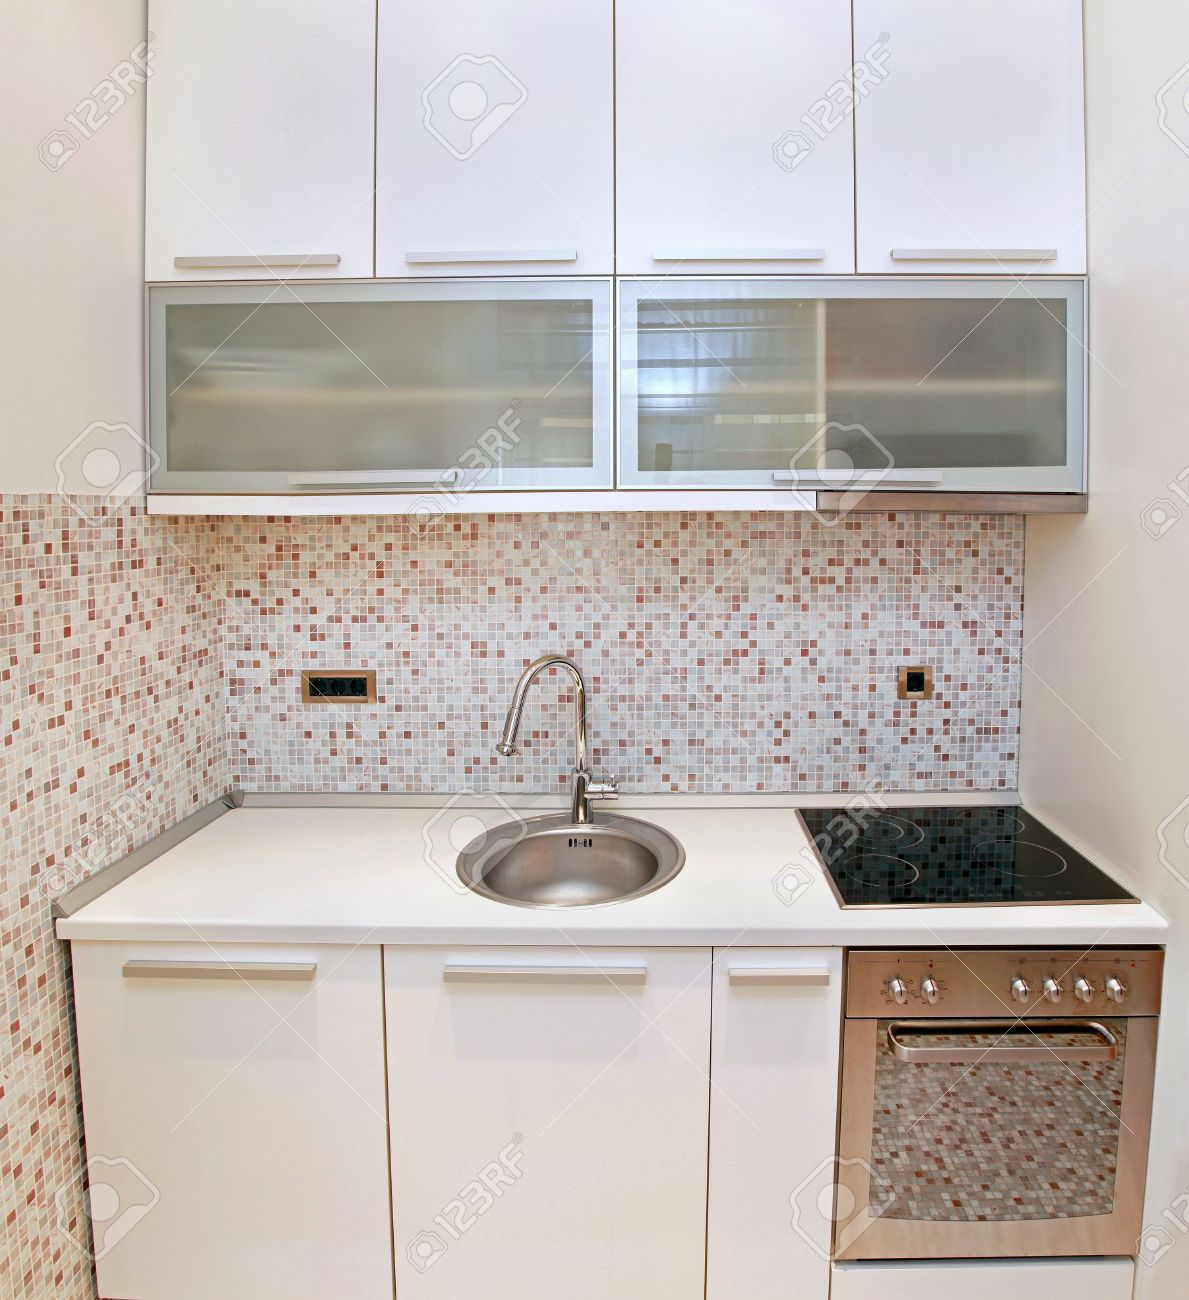 Apartment Stove Oven Images & Stock Pictures. Royalty Free ...